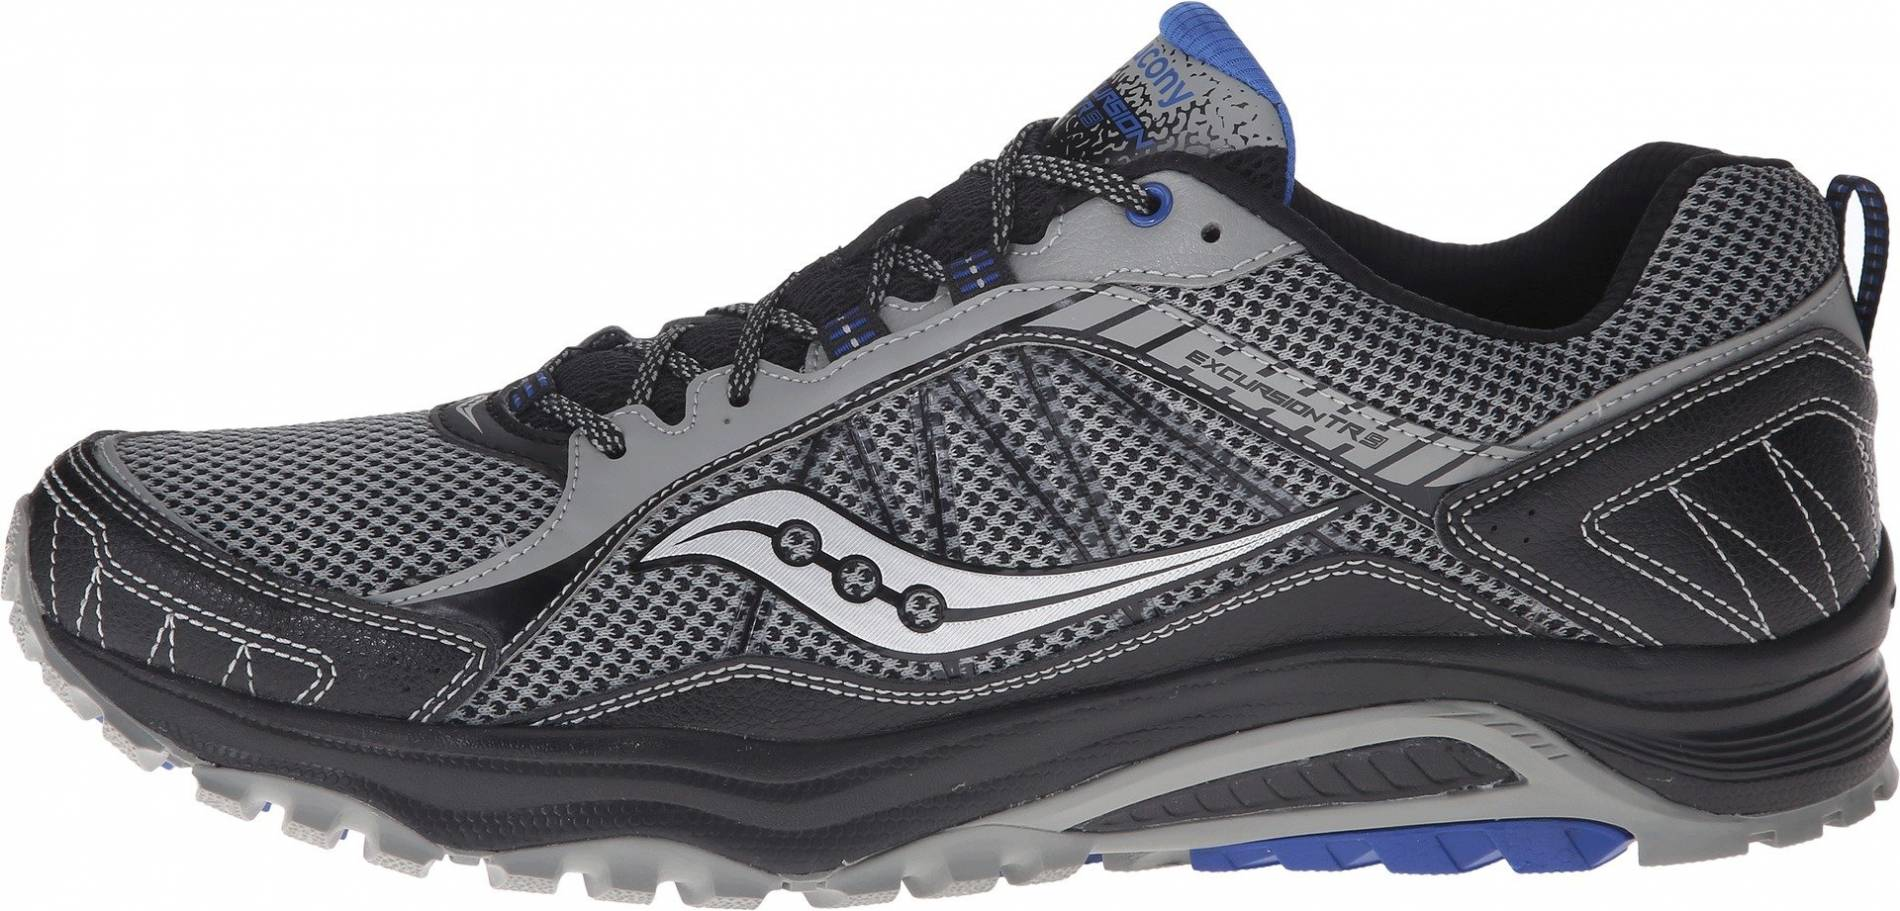 $90 + Review of Saucony Excursion TR 9